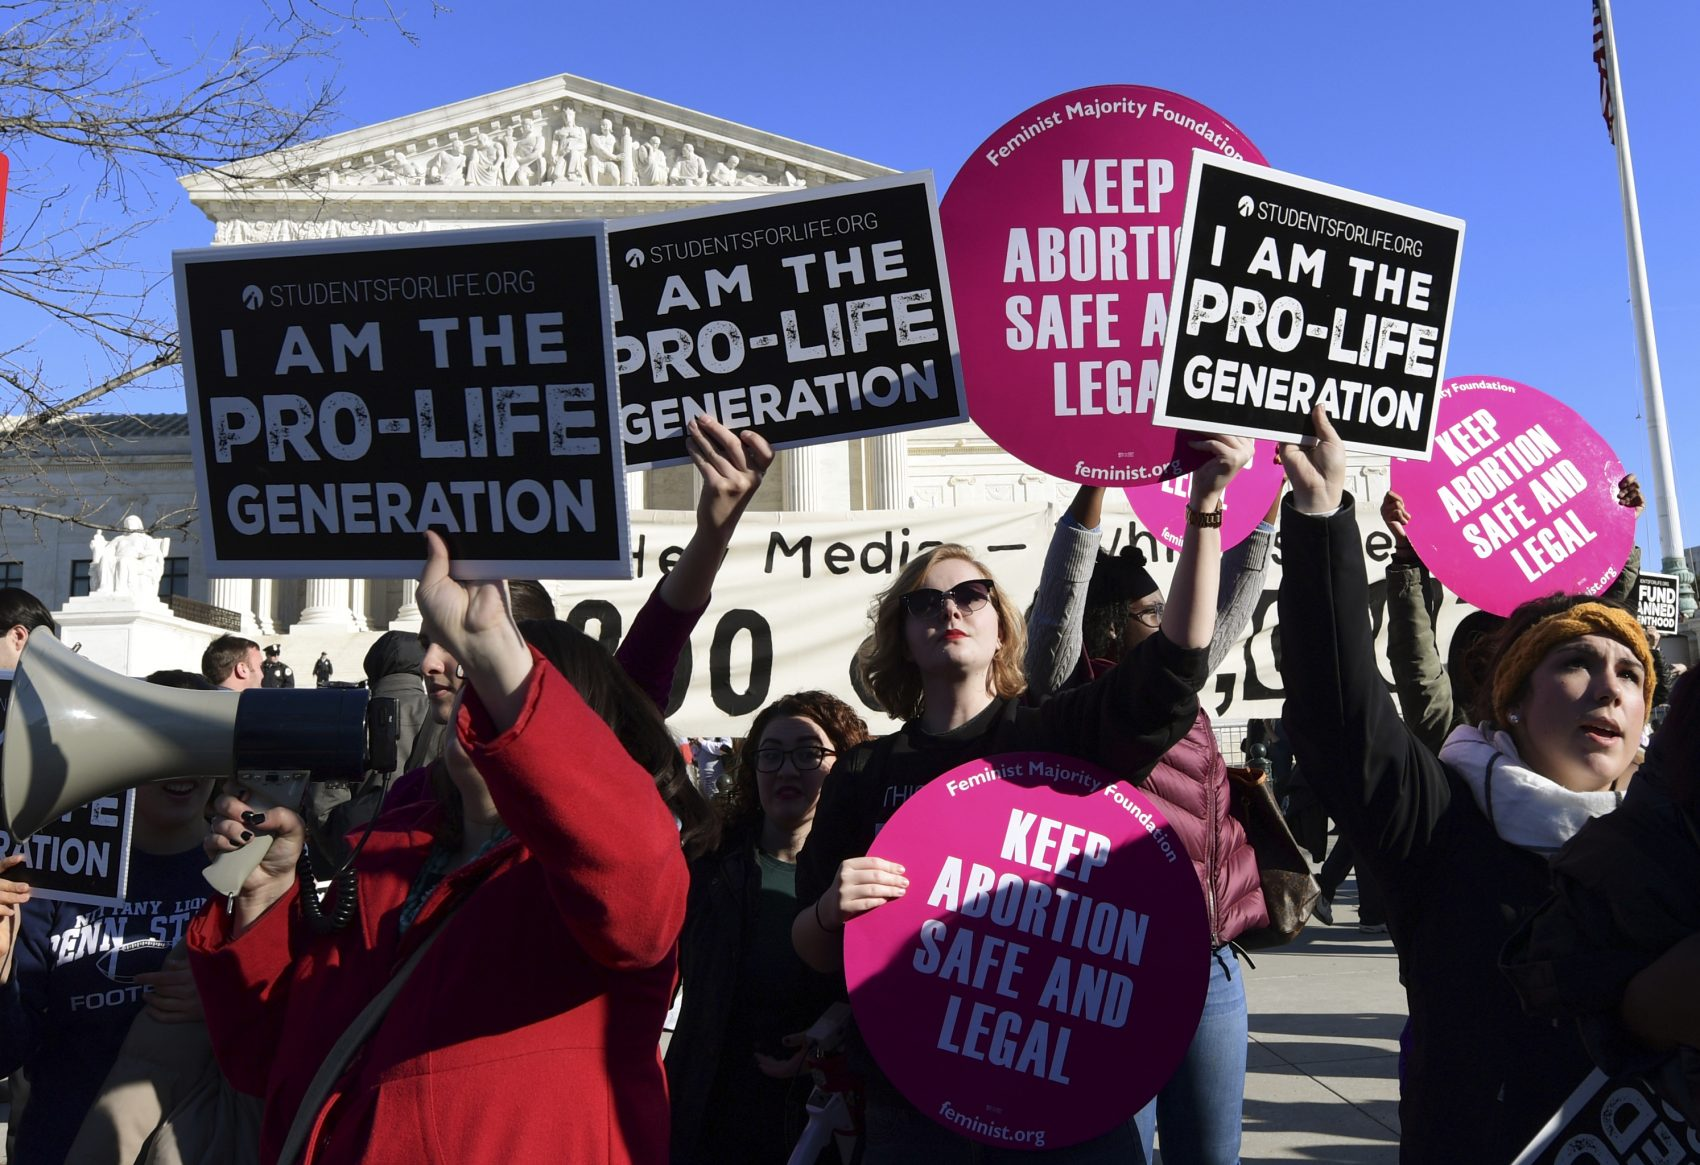 Protesters on both sides of the abortion issue gather outside the Supreme Court in Washington, Friday, Jan. 19, 2018, during the March for Life. (Susan Walsh/AP)